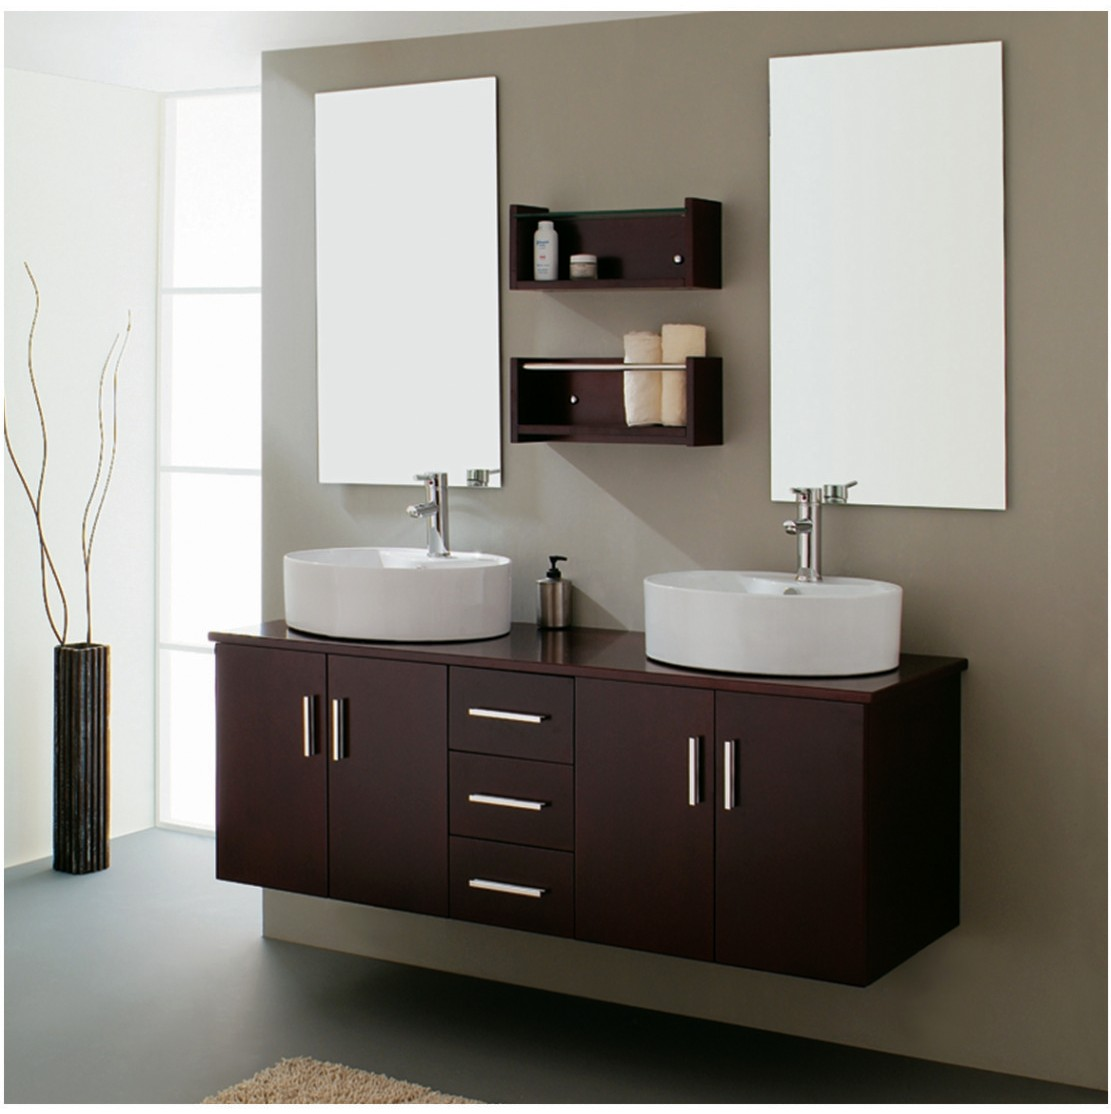 Modern bathroom double sink home decorating ideas for Bathroom vanity designs images